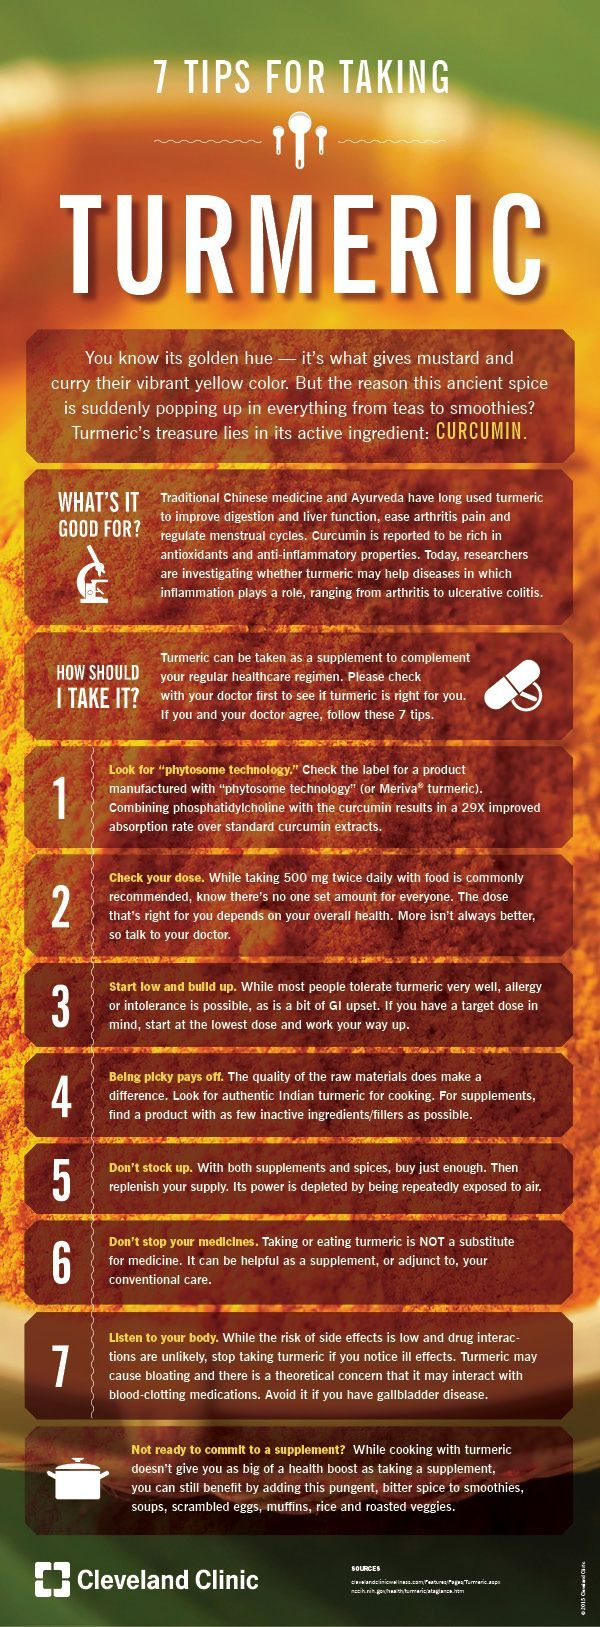 7 Tips for Taking Turmeric (Infographic)